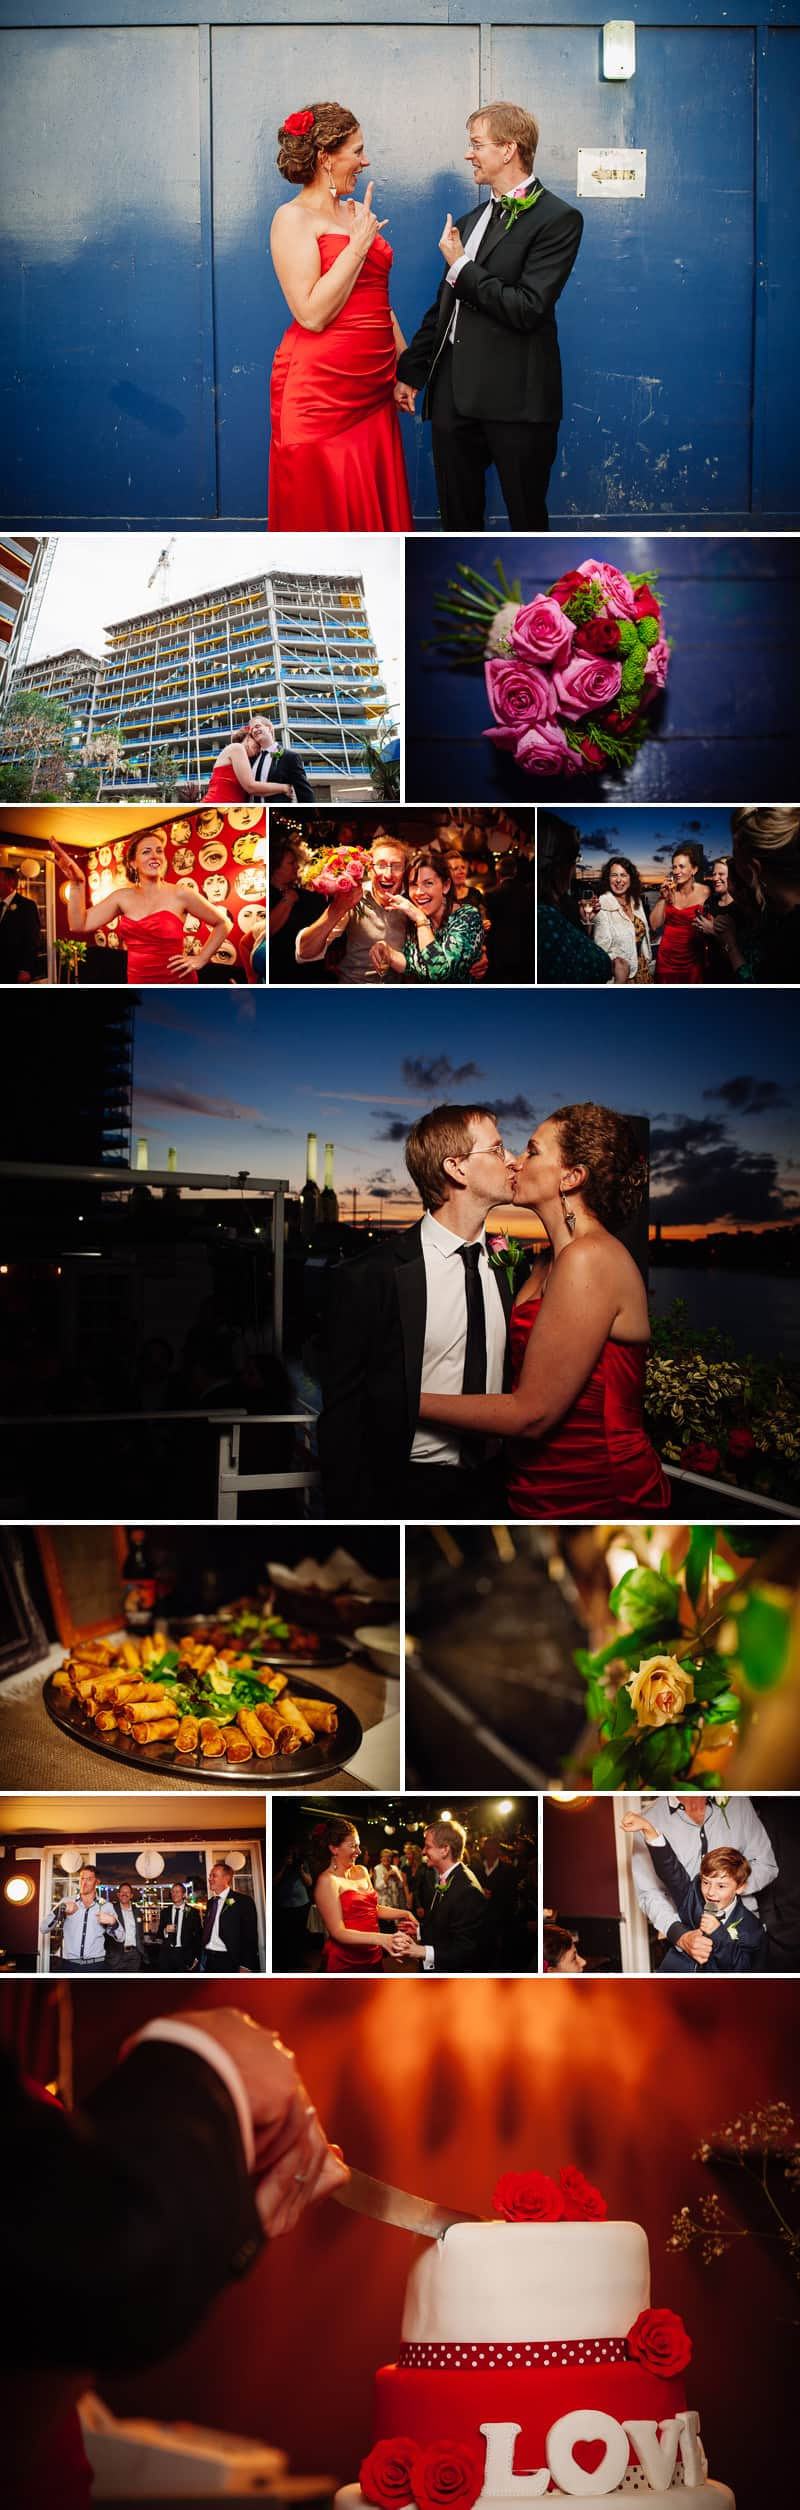 Battersea Barge wedding